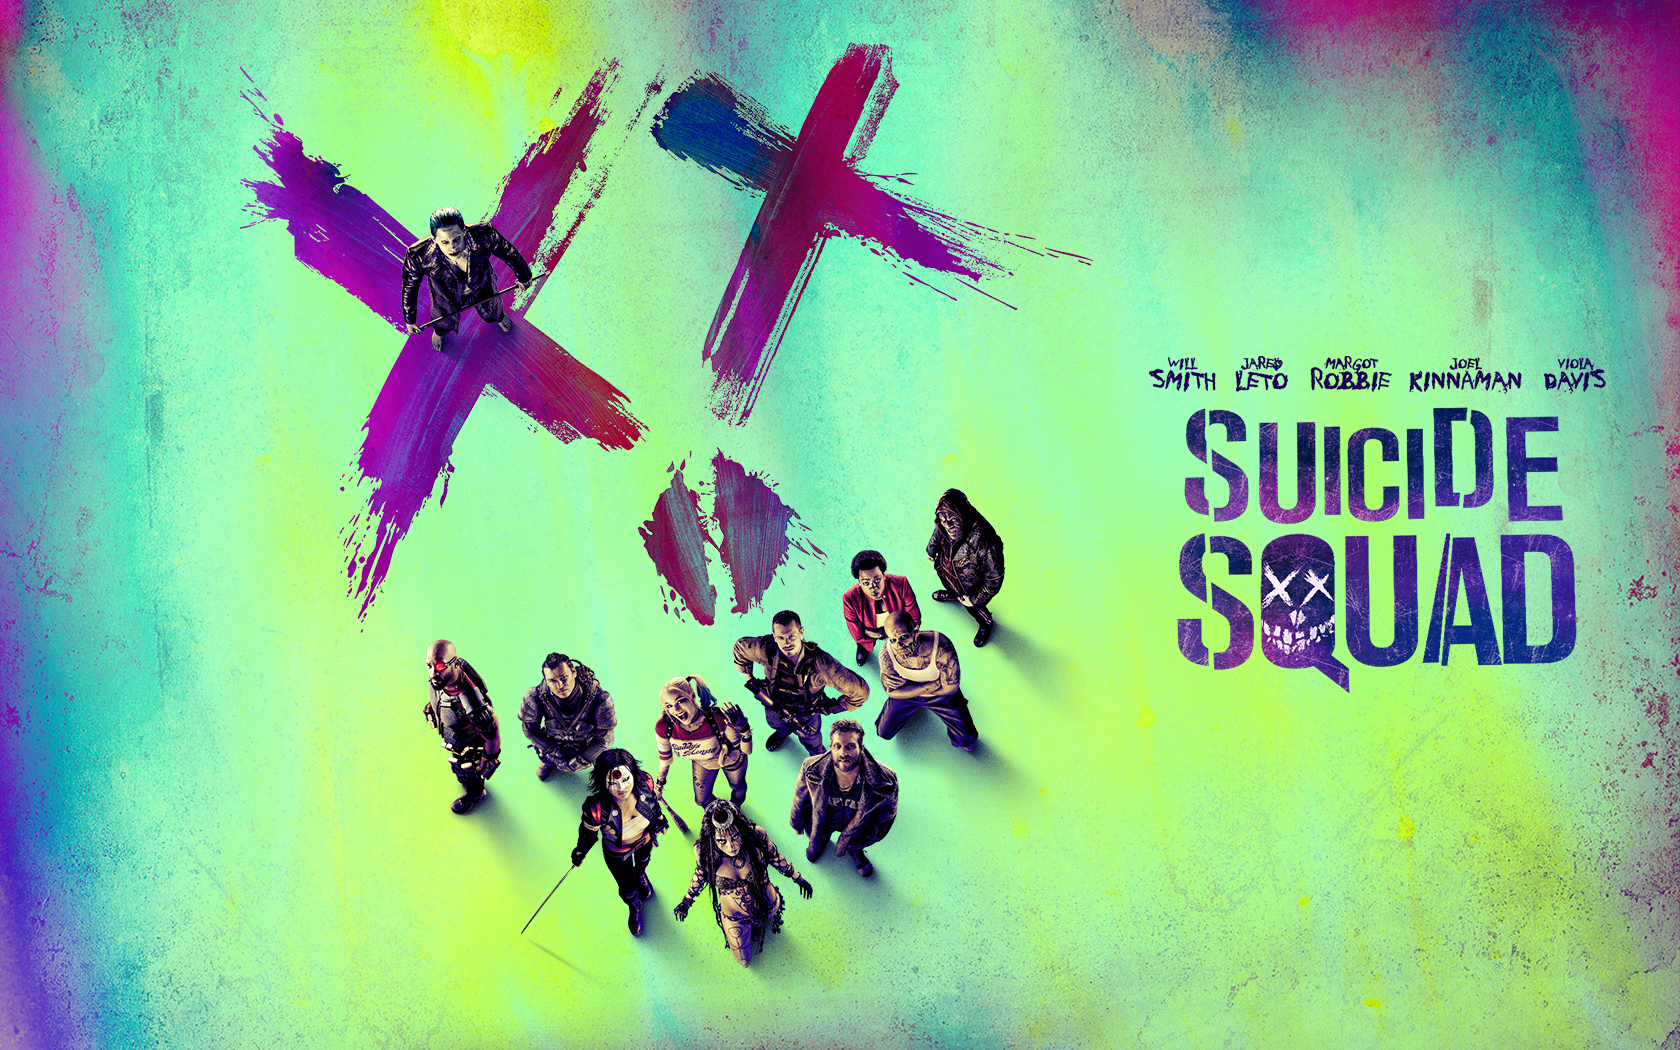 Suicide Squad Poster wallpaper